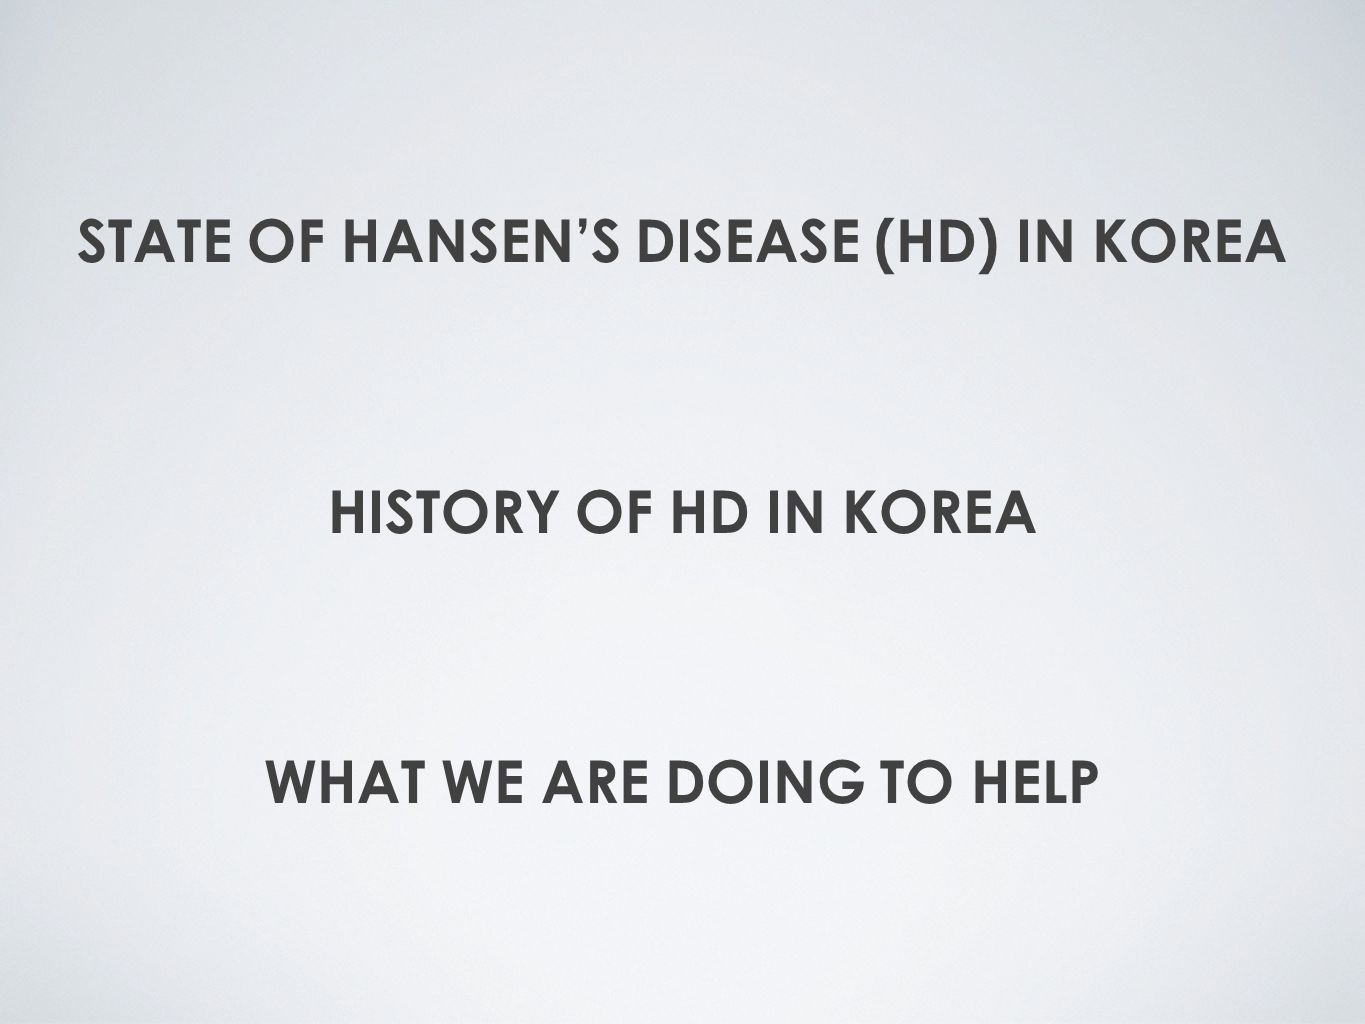 STATE OF HANSEN'S DISEASE (HD) IN KOREA HISTORY OF HD IN KOREA WHAT WE ARE DOING TO HELP